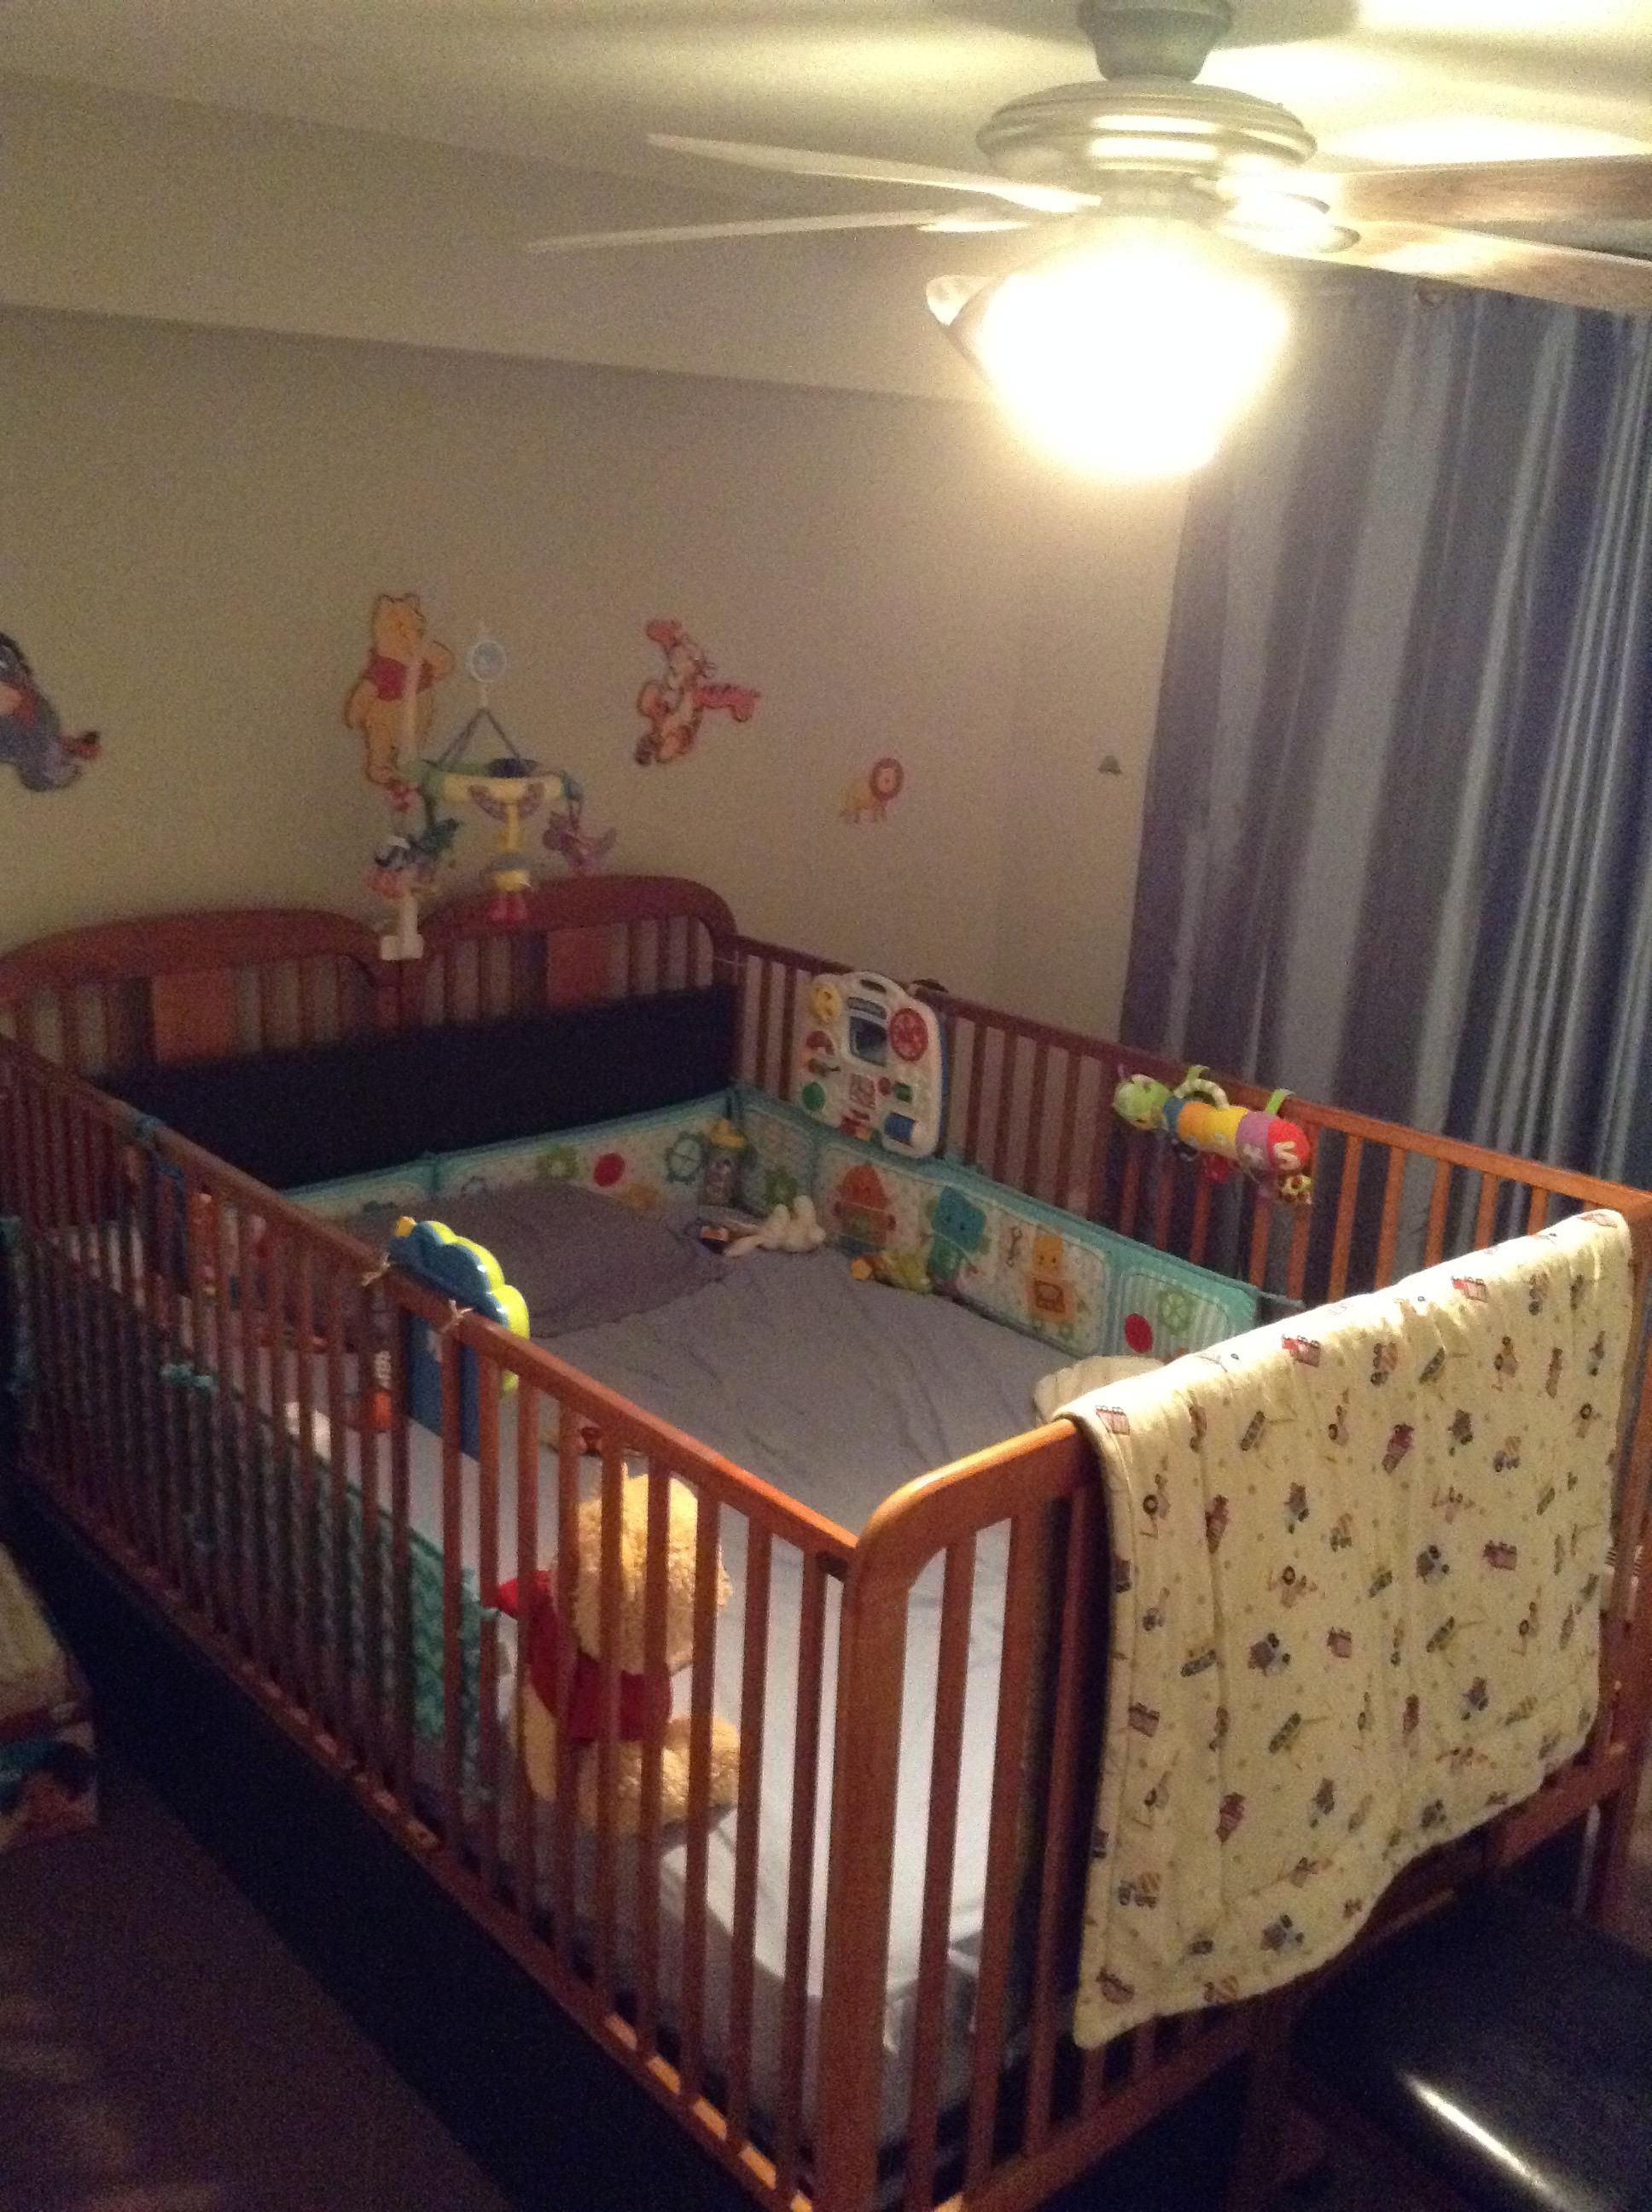 http://www.dailydiapers.com/board/index.php?/topic/52598-new-crib ...